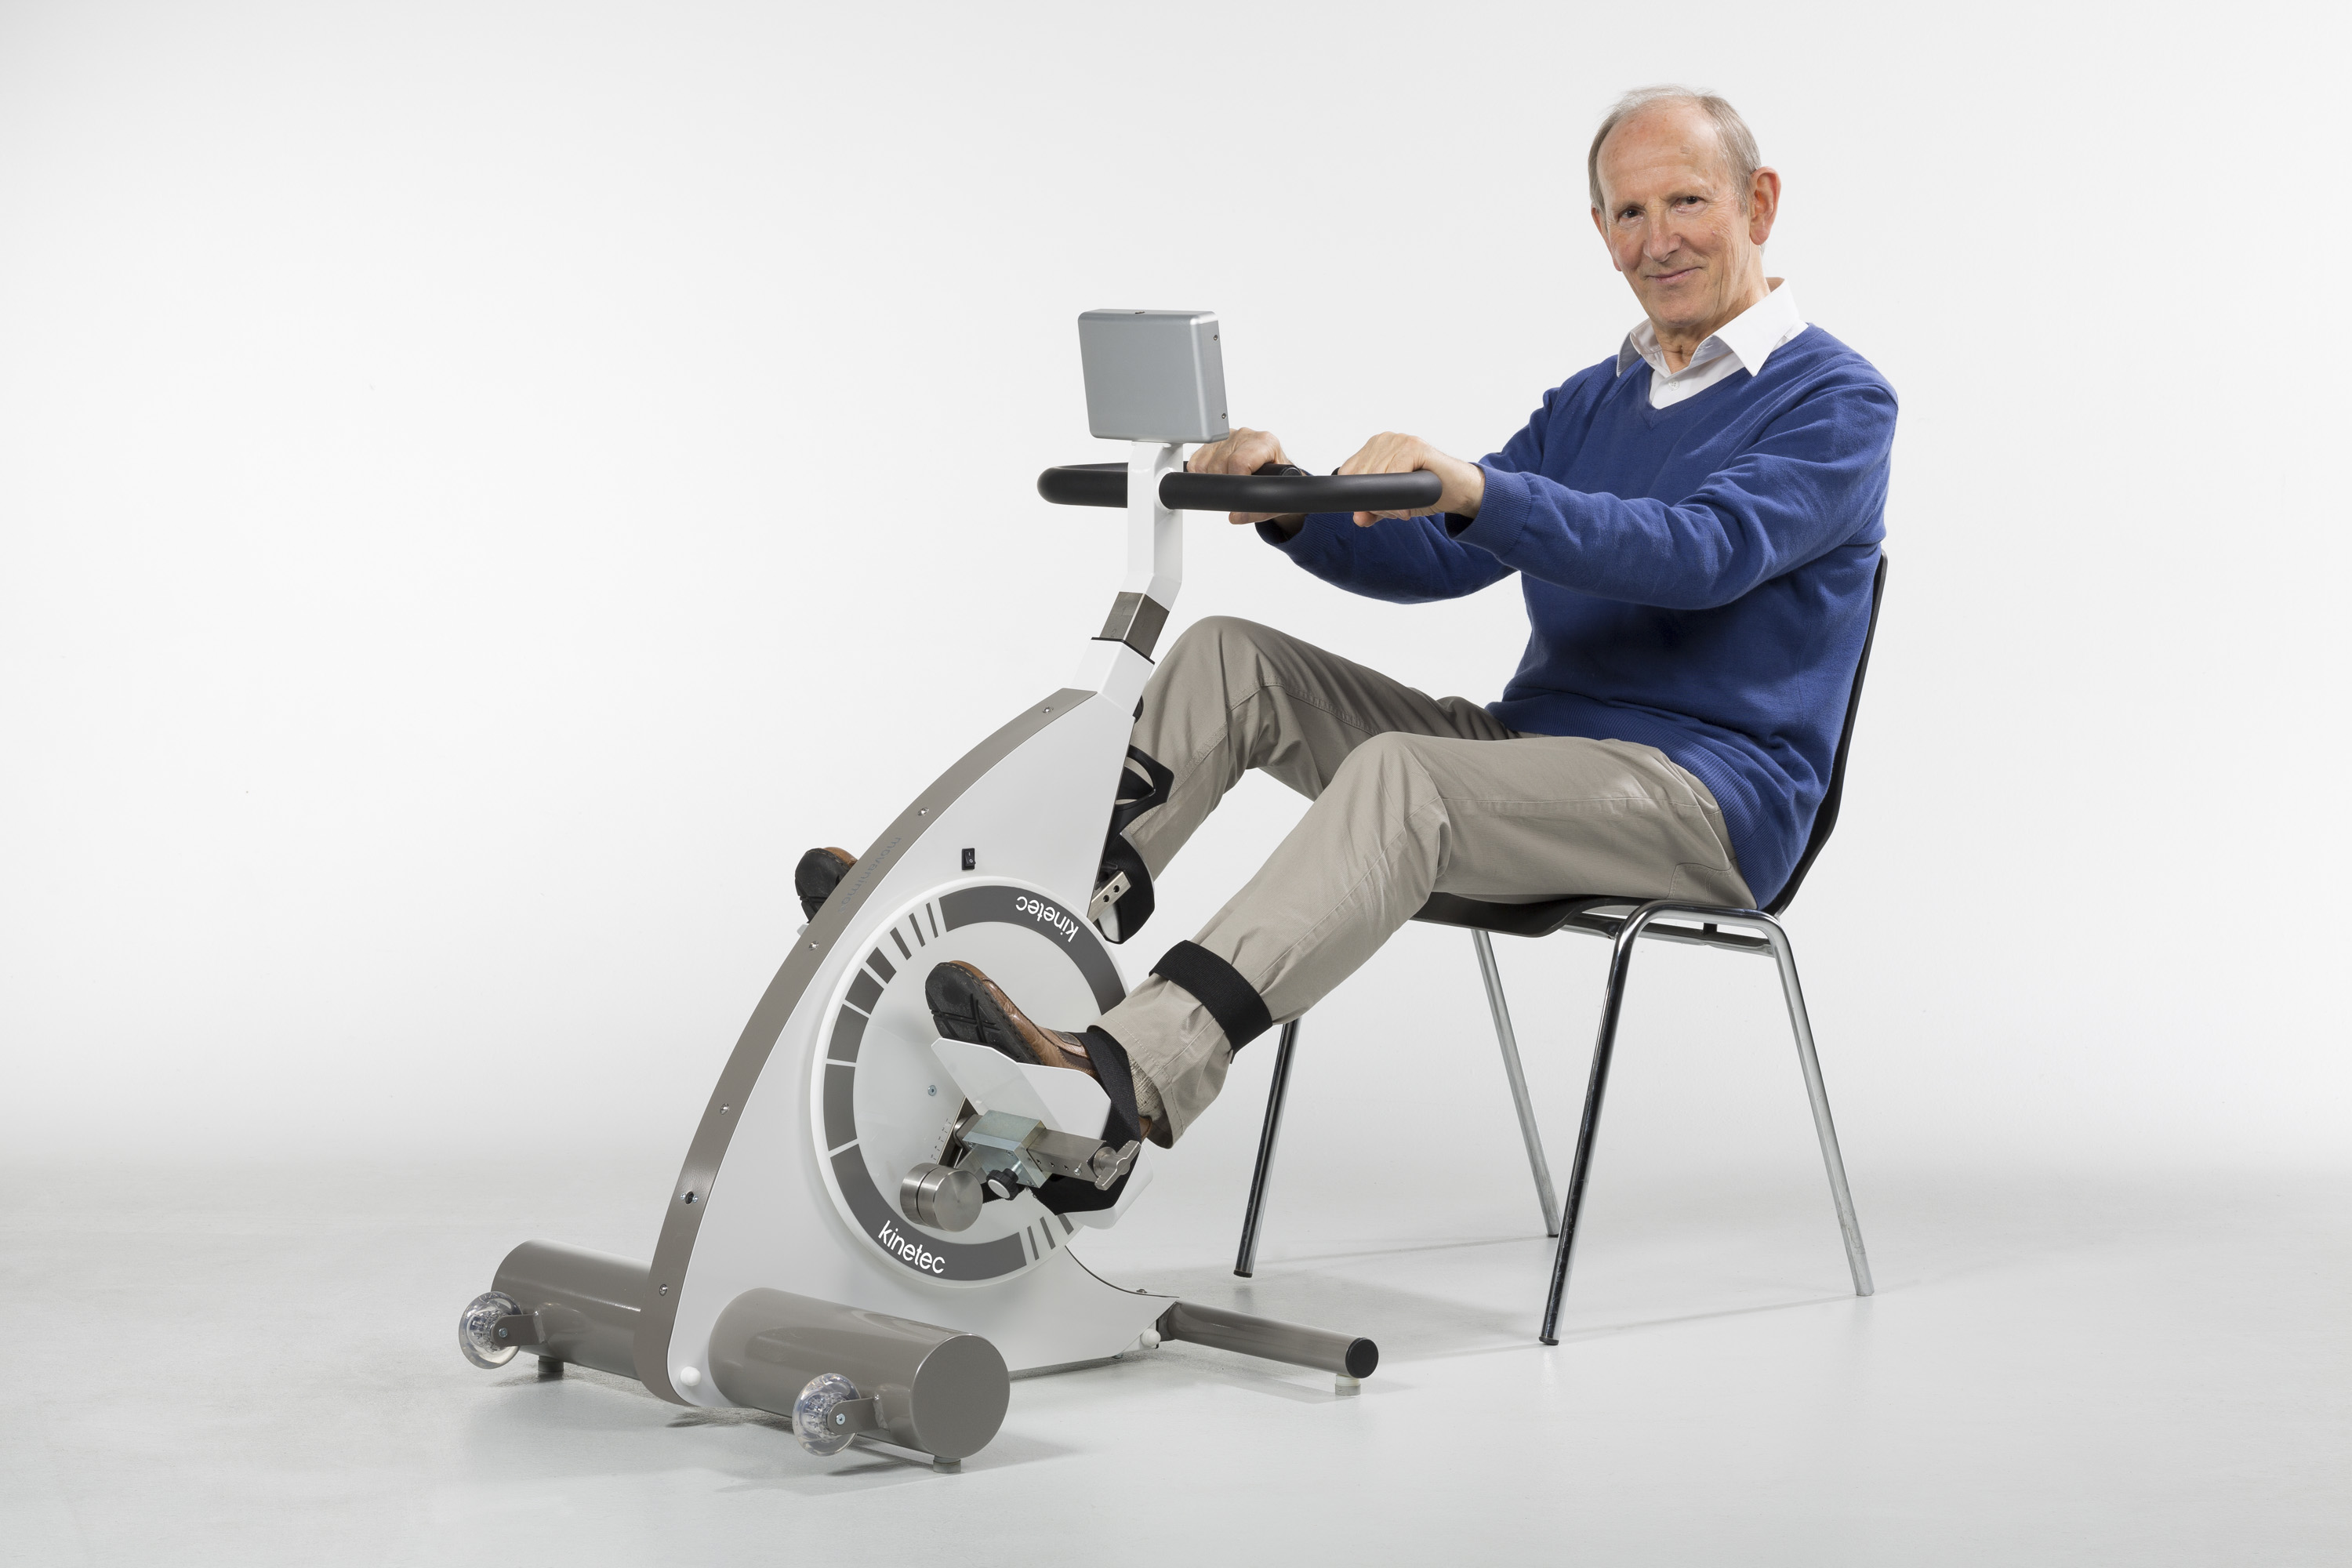 Kinetec Kinevia in use by elderly male in chair